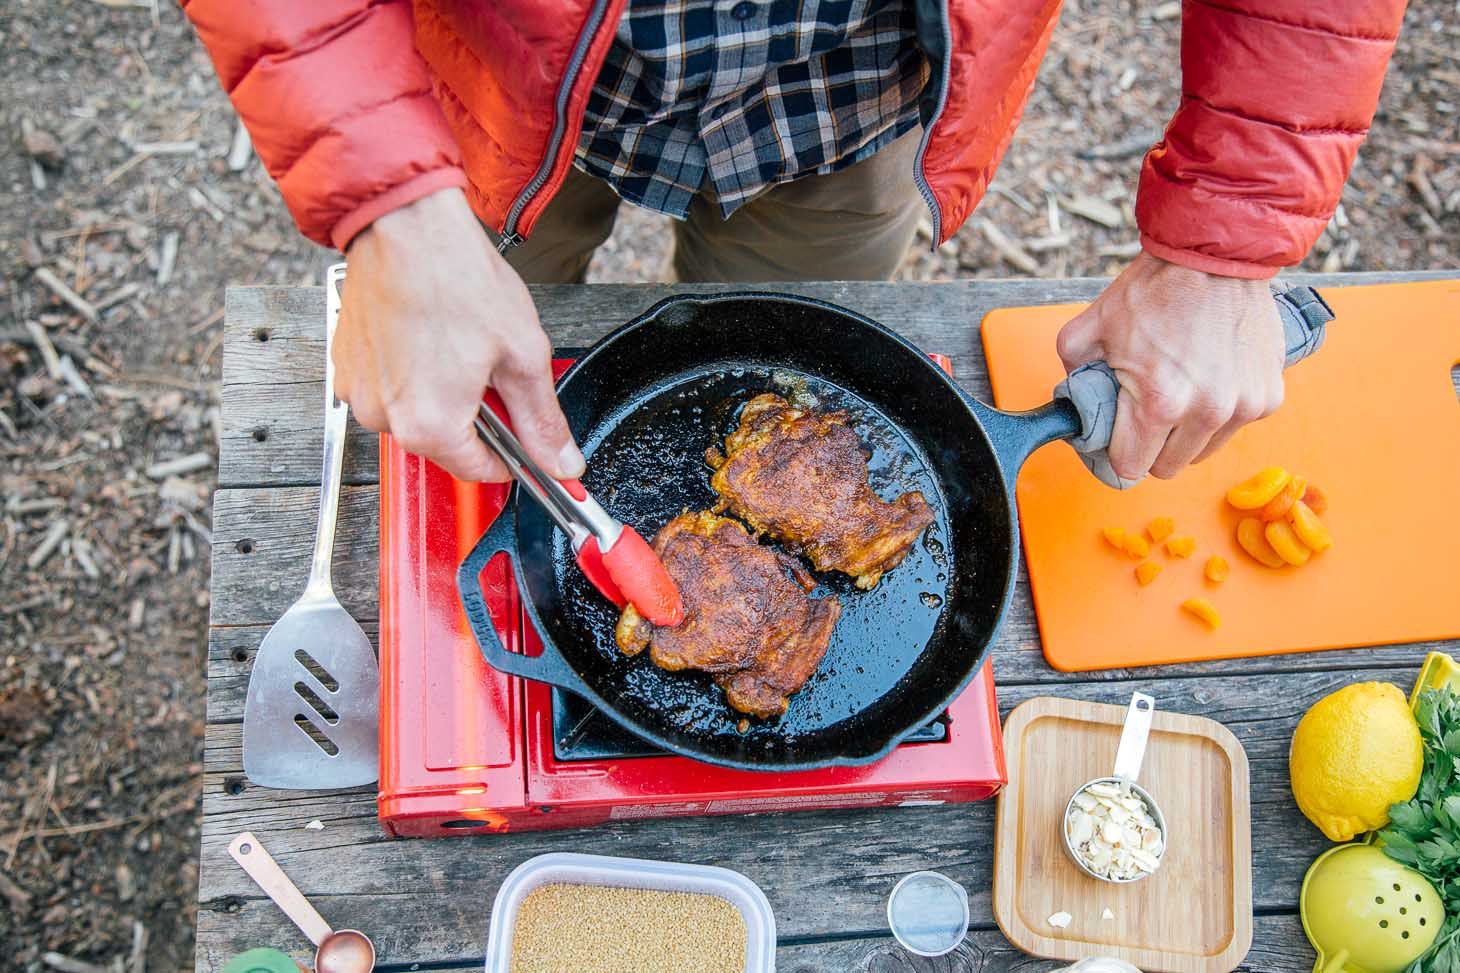 Michael cooking chicken in a cast-iron skillet over a camp stove